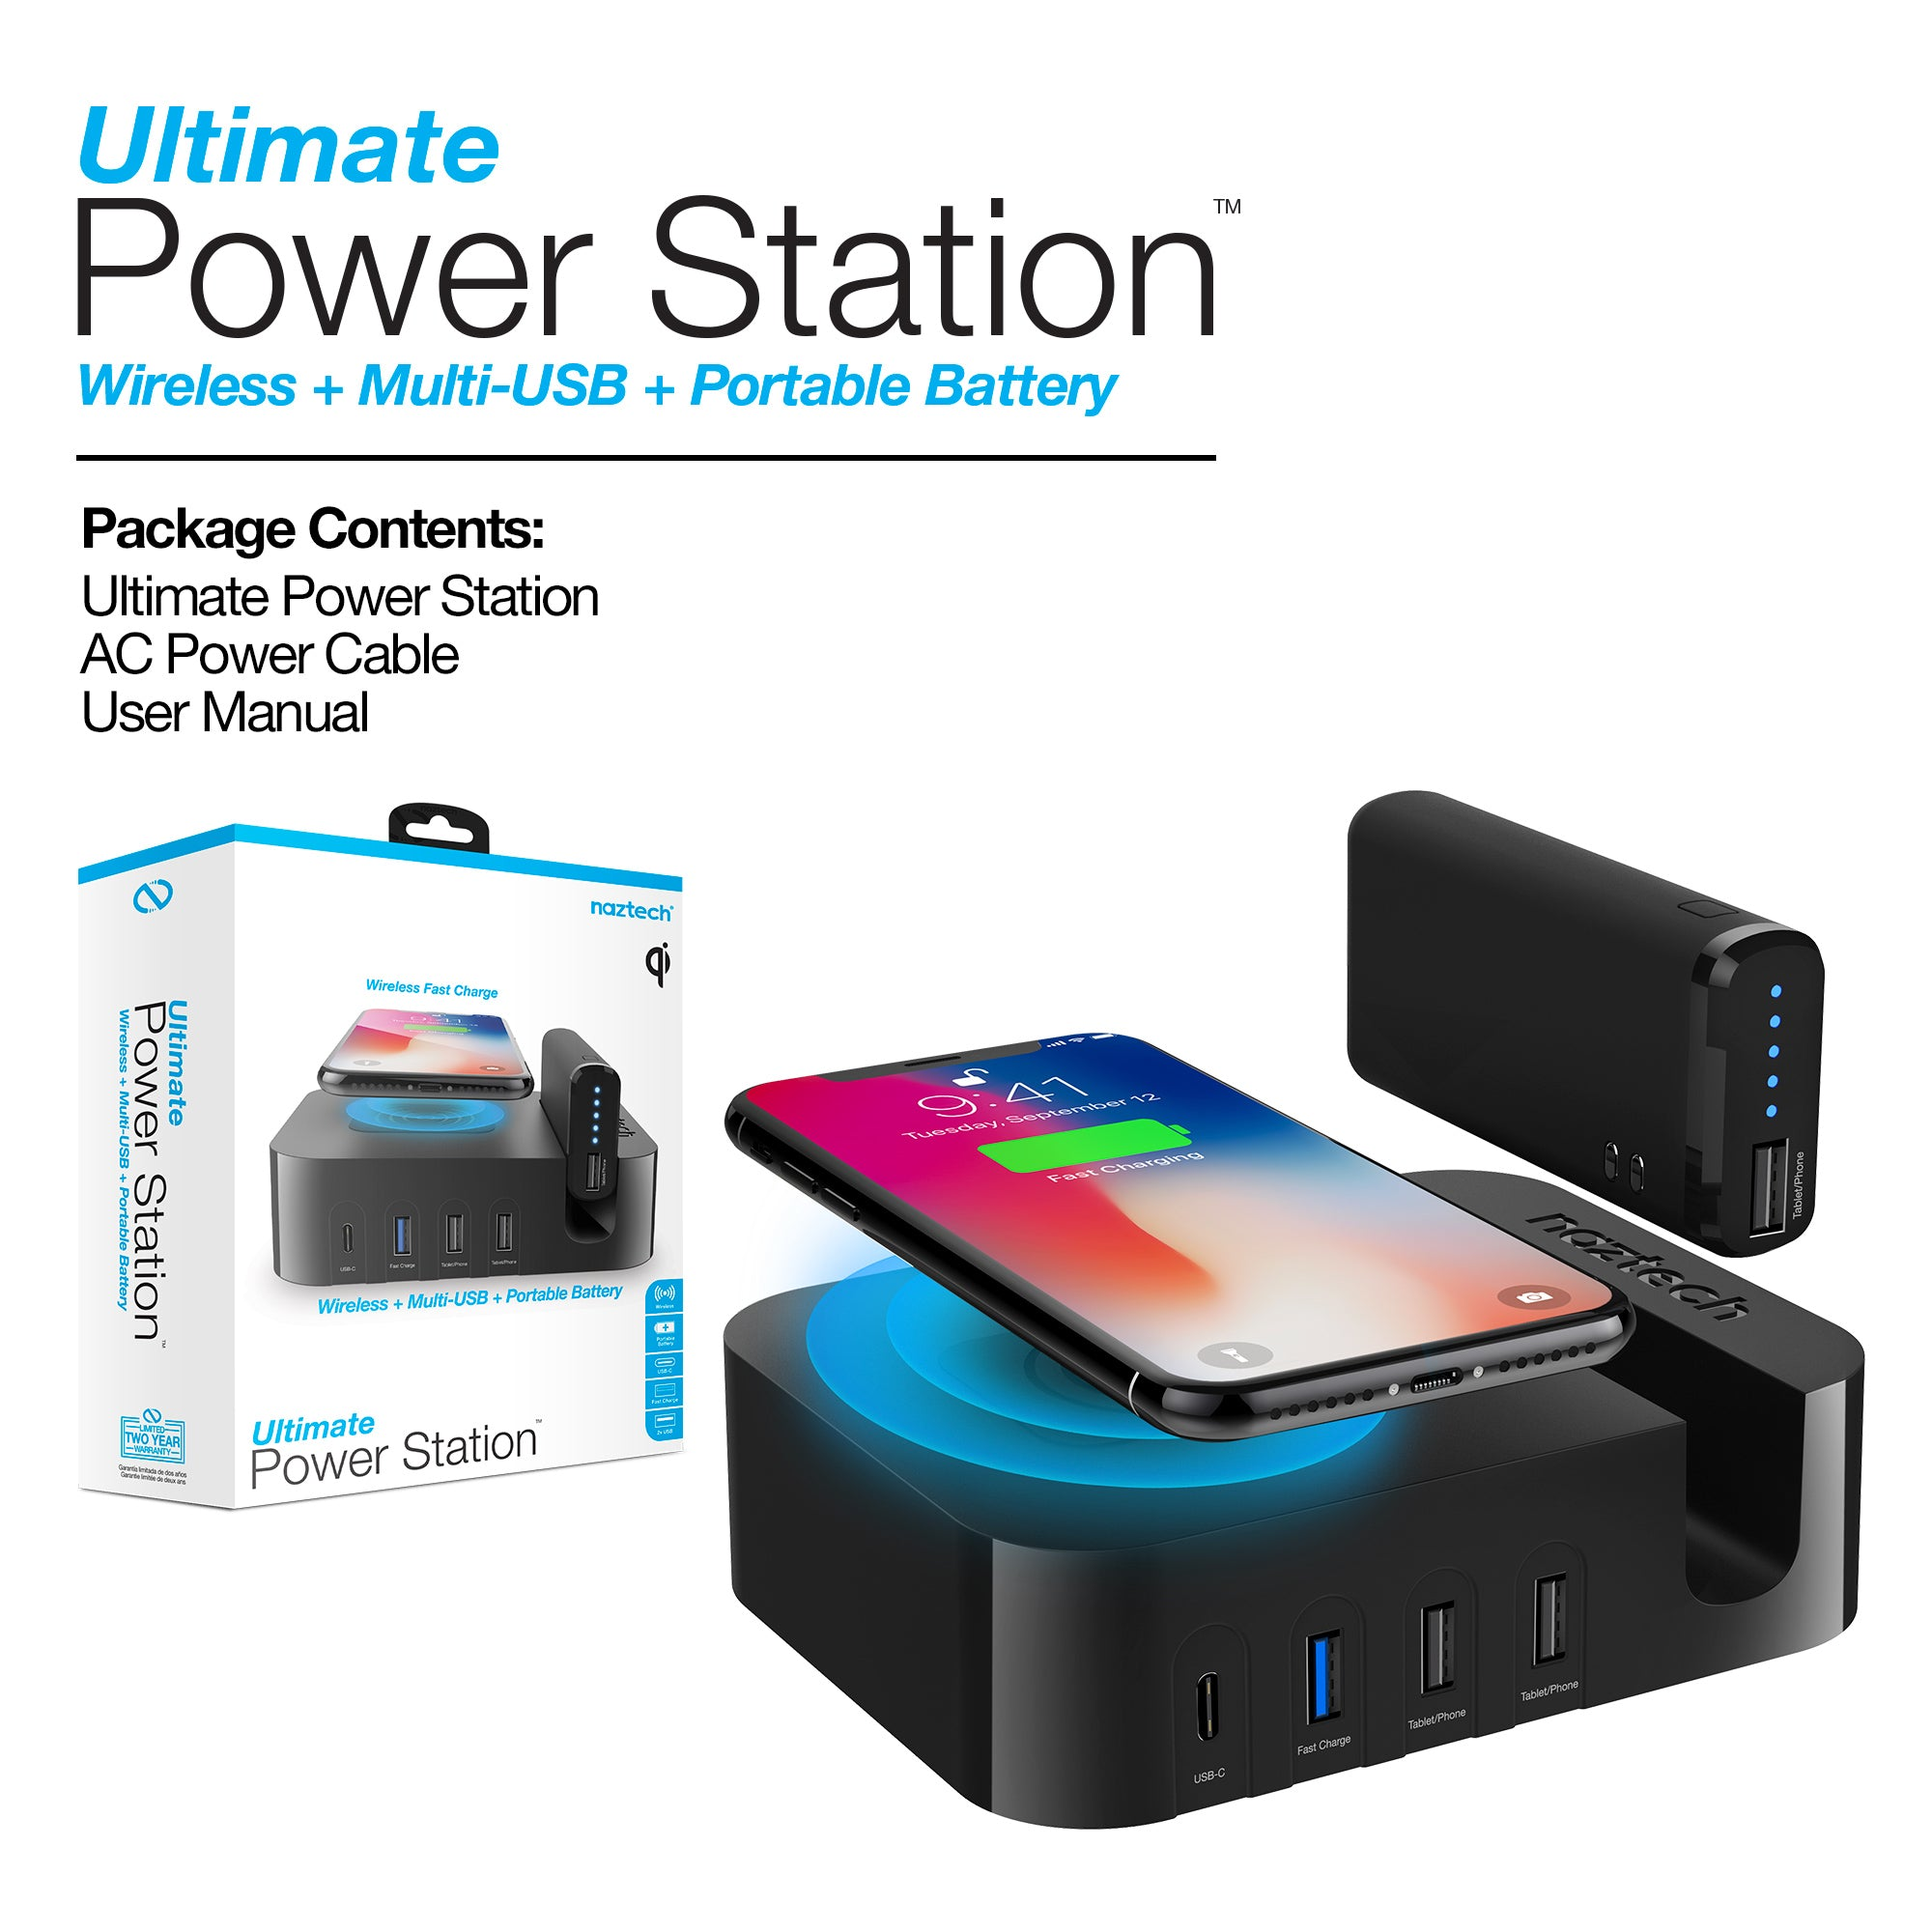 Ultimate Power Station